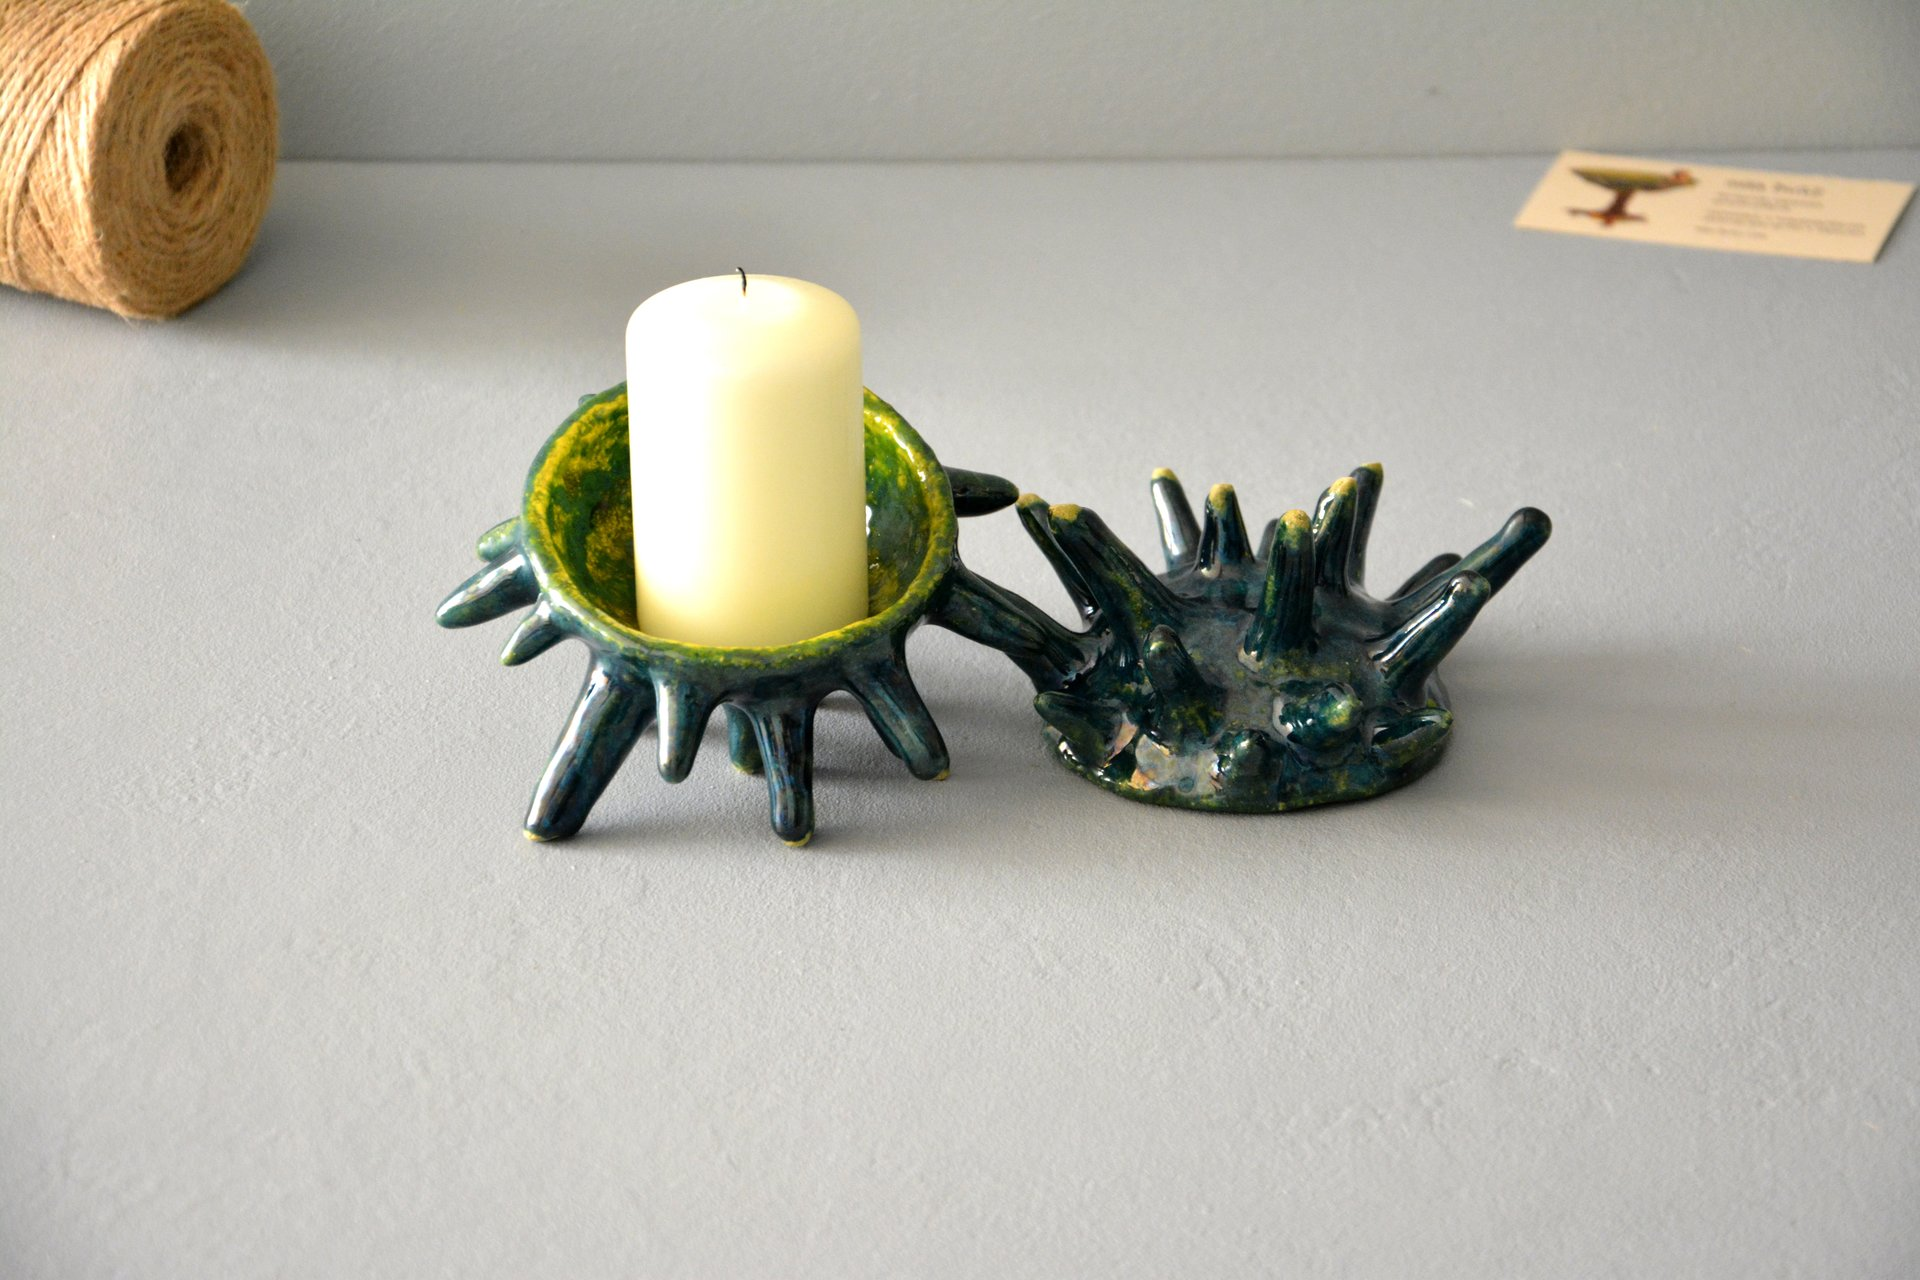 Spikes - Ceramic Candl-holders, diameter - 10 cm, photo 2 of 7.